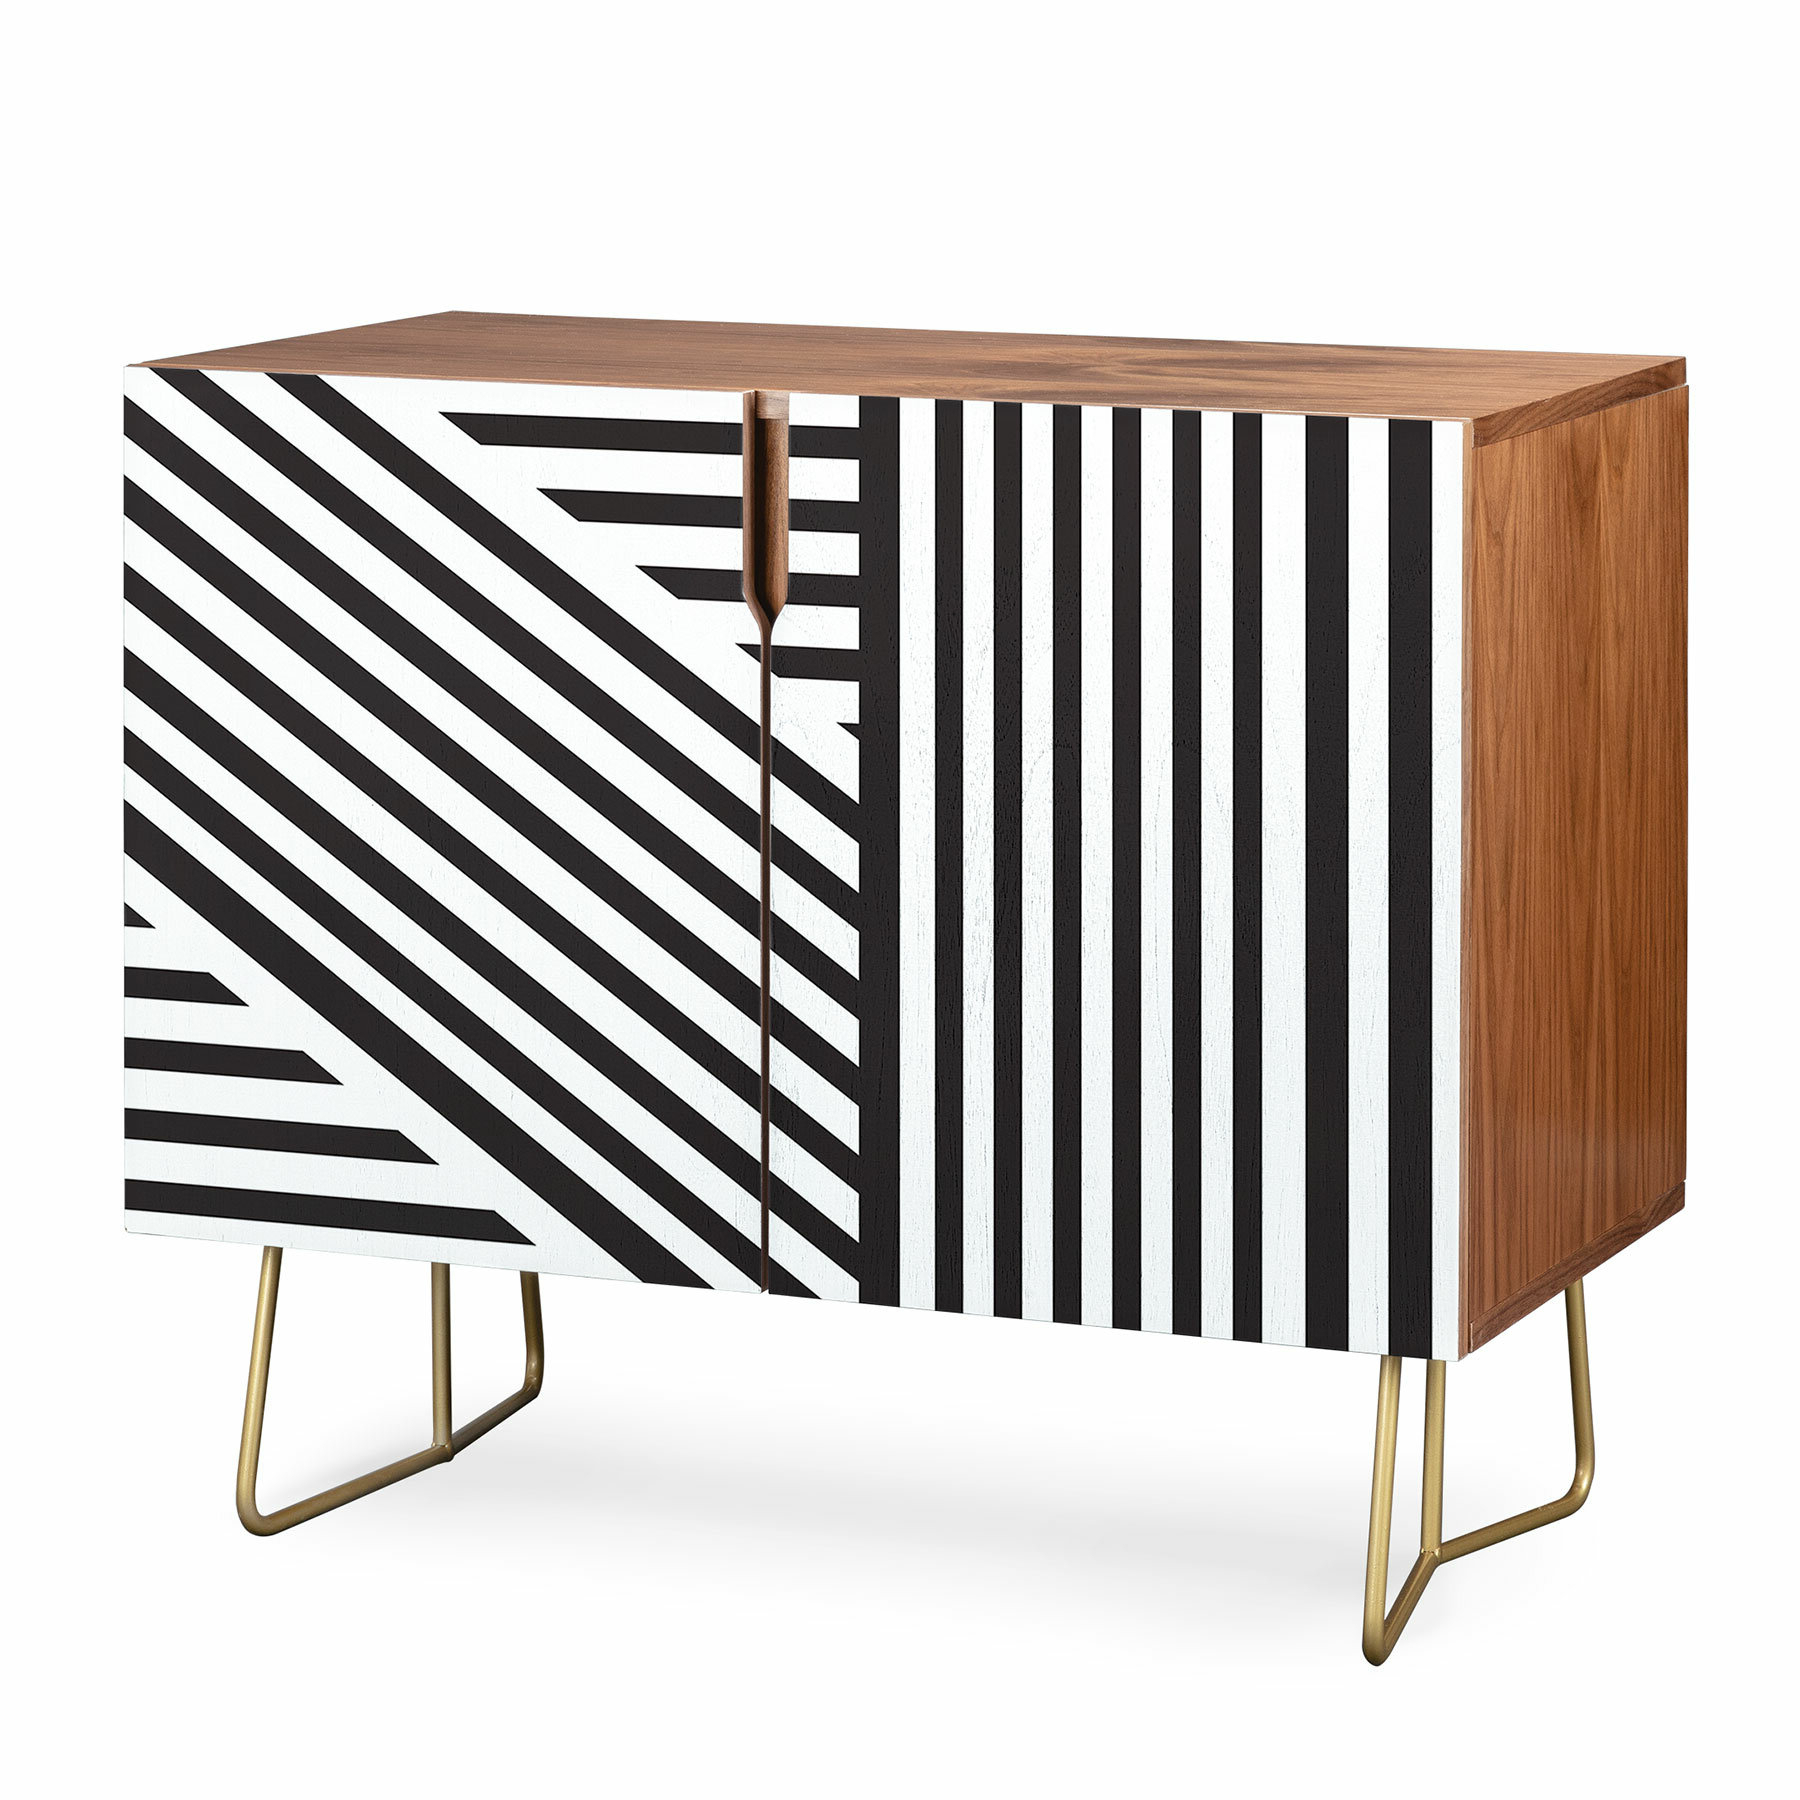 Vy La Everything Nice Credenza Pertaining To Emerald Cubes Credenzas (Gallery 11 of 20)